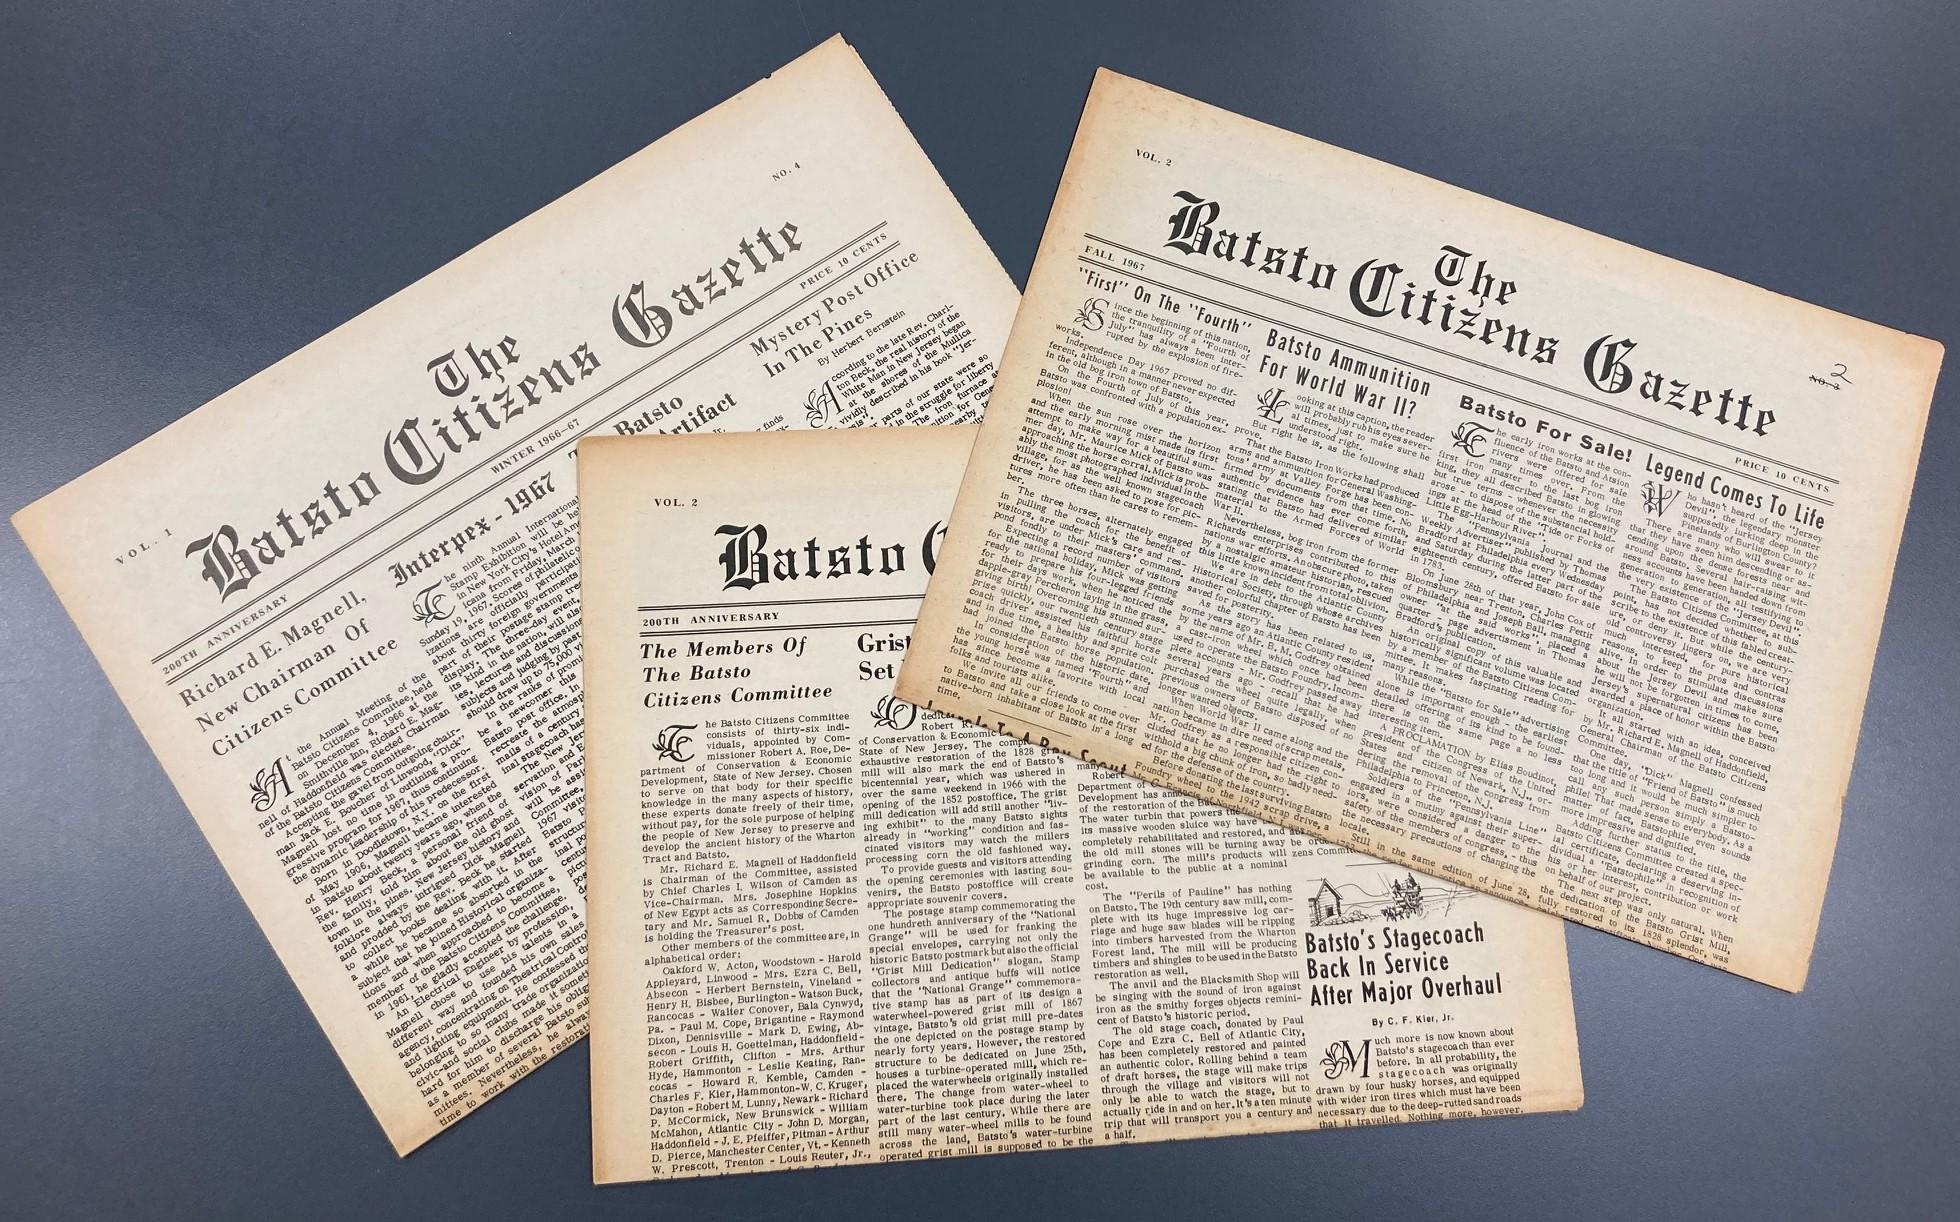 three copies of a newspaper on a gray background